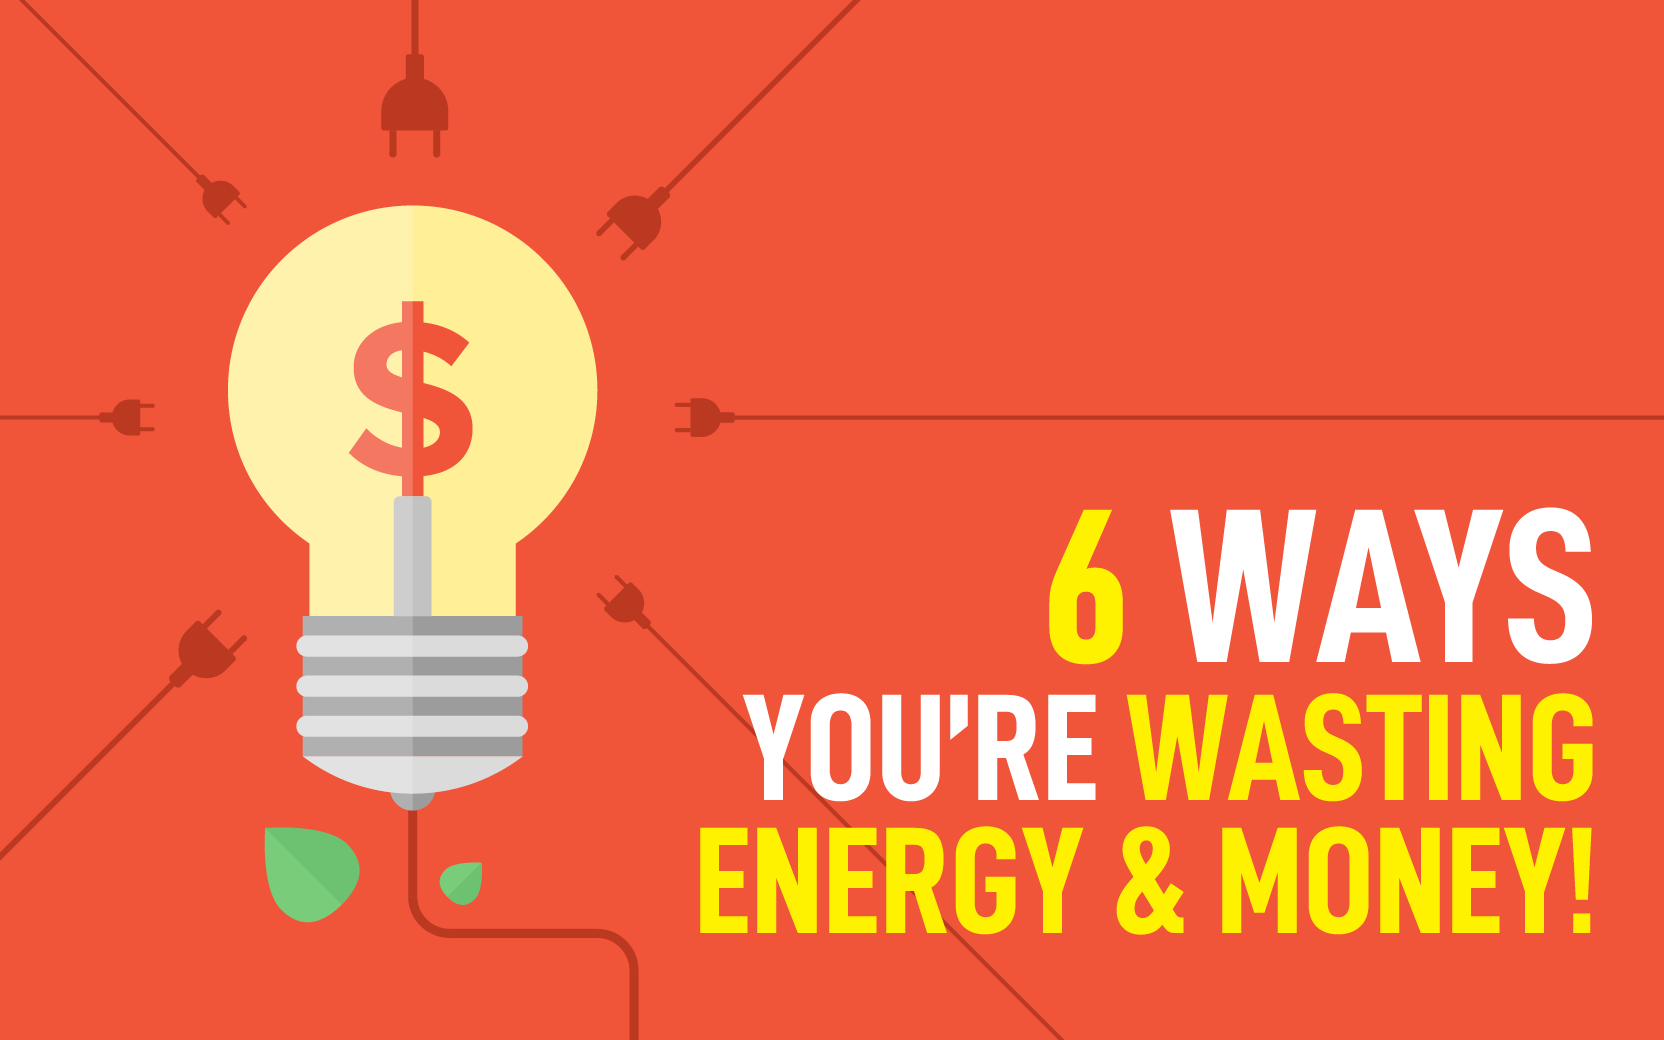 6 Ways You're Wasting Energy & Money